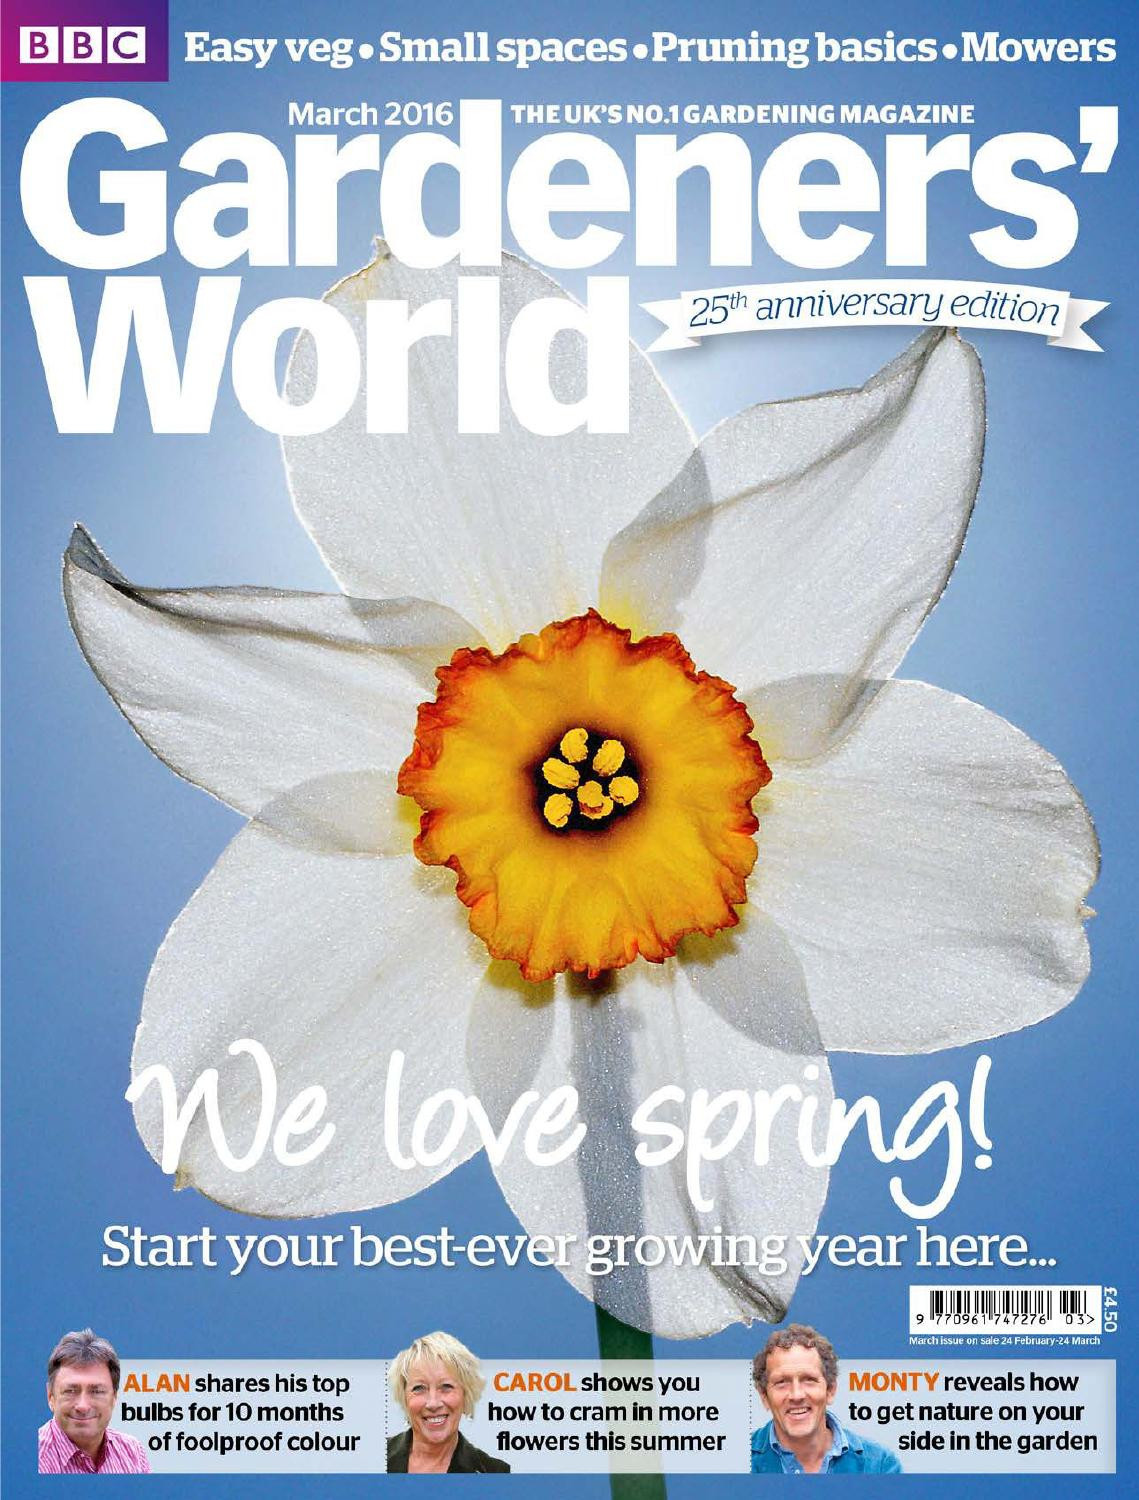 bulb forcing vases for sale of gardeners world mag 1603 25th anniversary edition by cristina with gardeners world mag 1603 25th anniversary edition by cristina meizoso issuu